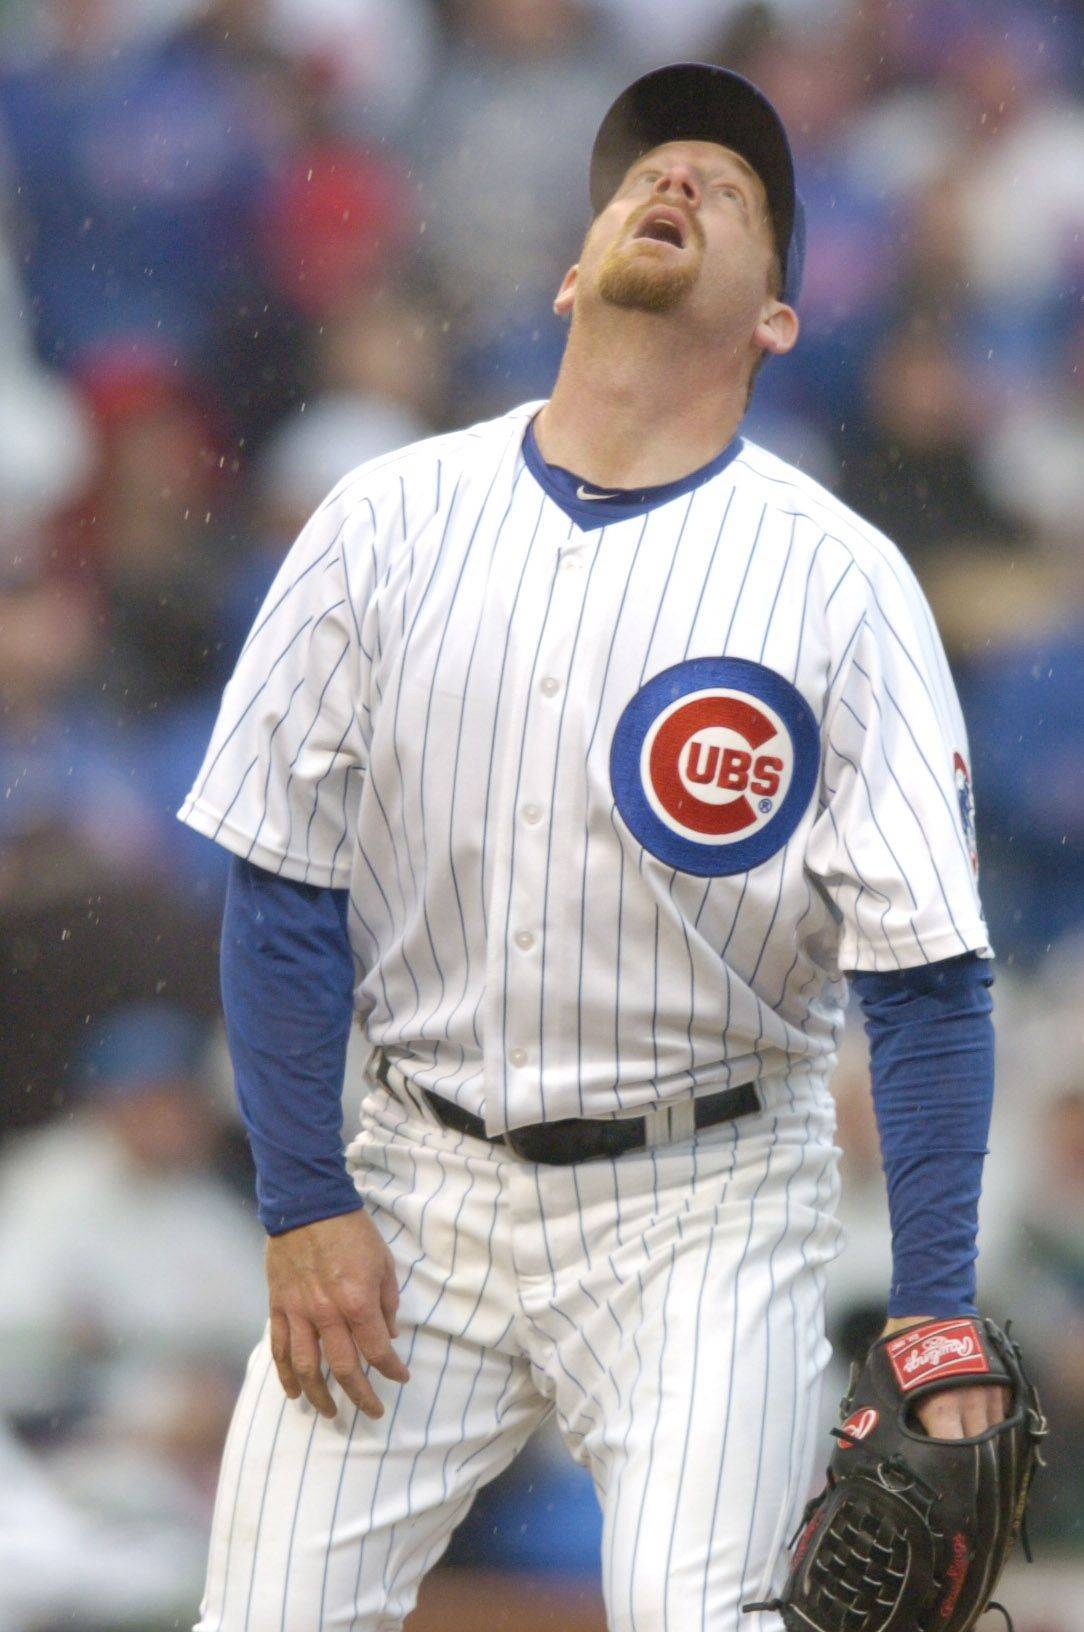 Cubs pitcher Ryan Dempster watches Neil Walker's grand slam sail out of the park during Friday's game on Opening Day at Wrigley Field.